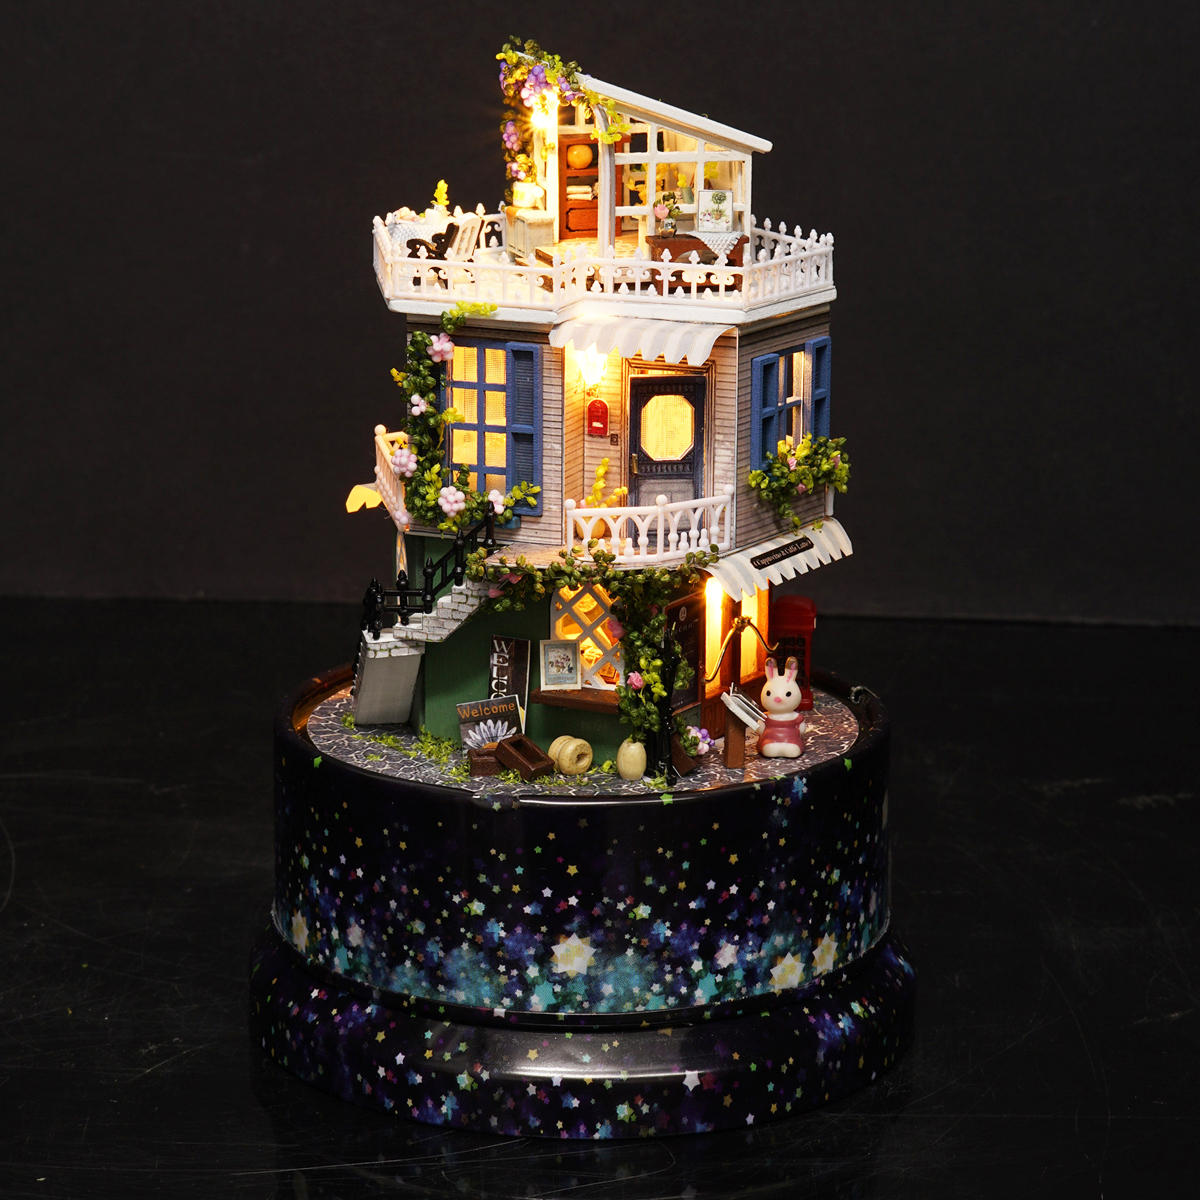 Cuteroom 1:24DIY Handicraft Miniature Voice Activated LED Light&Music with Cover Provence Dollhouse - 5